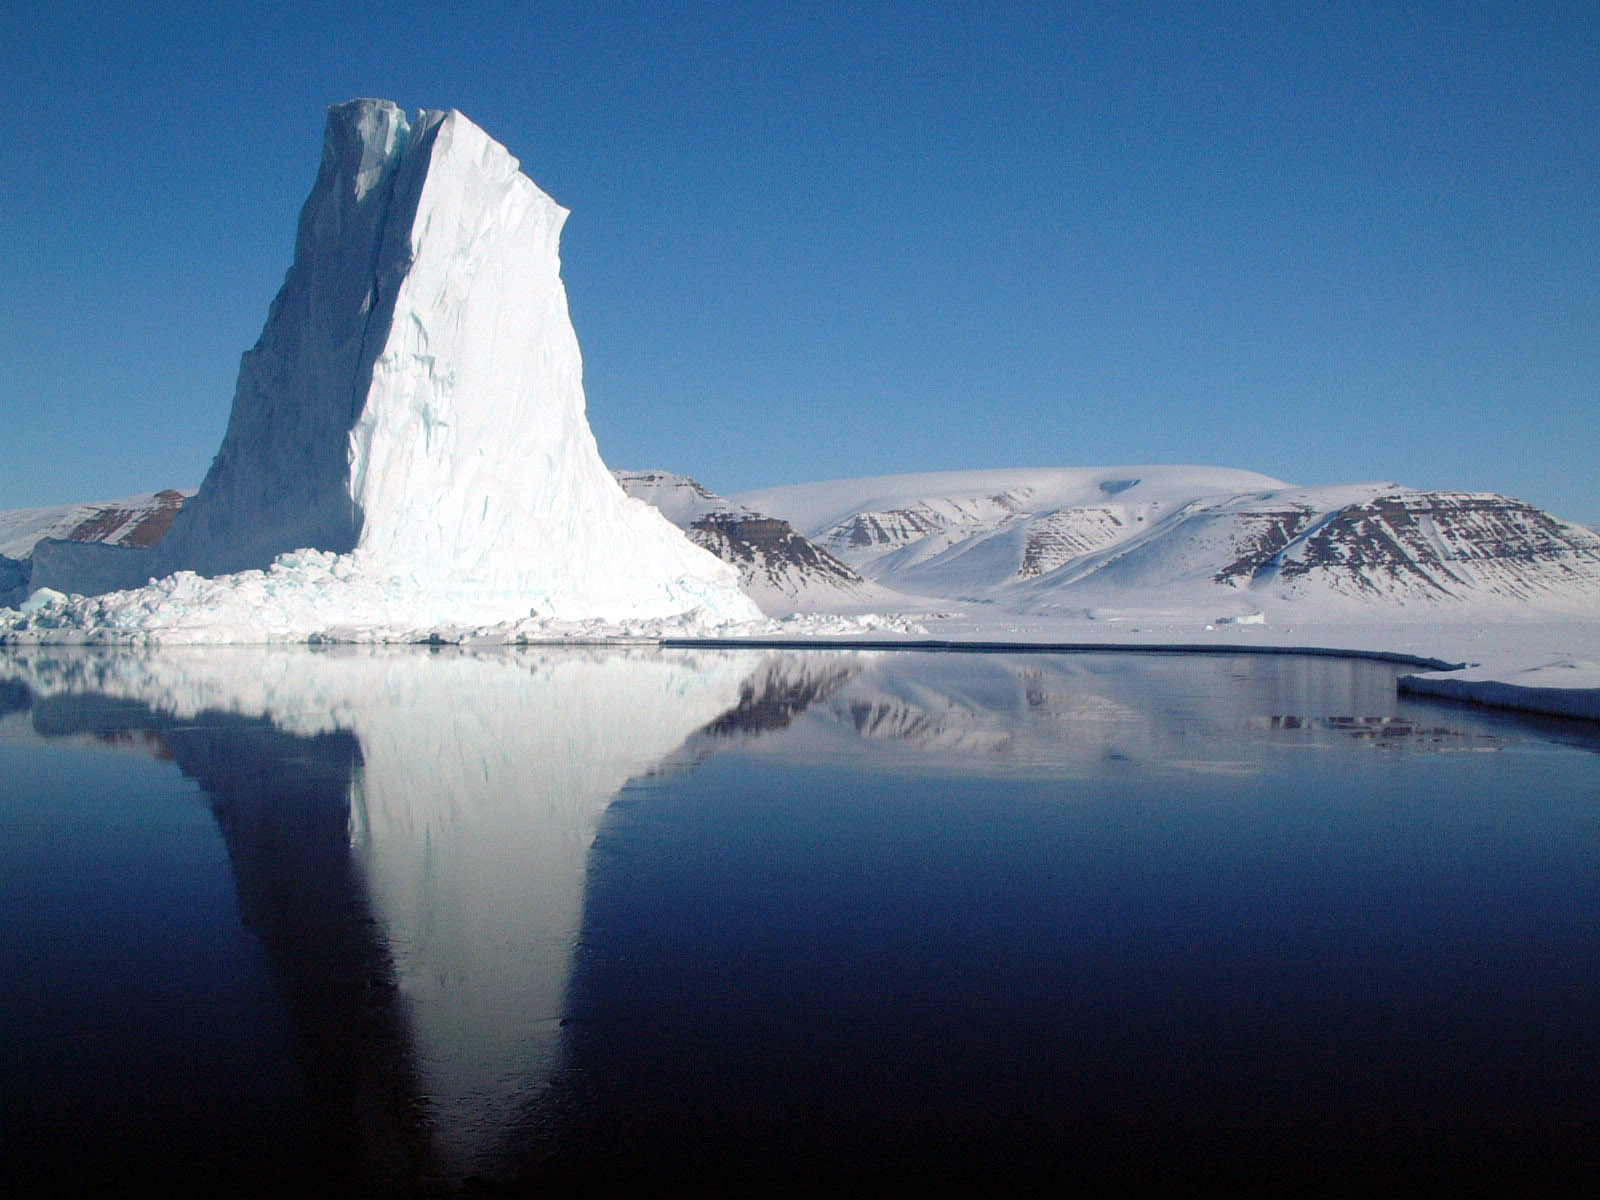 Resim:Iceberg at Baffin Bay.jpg